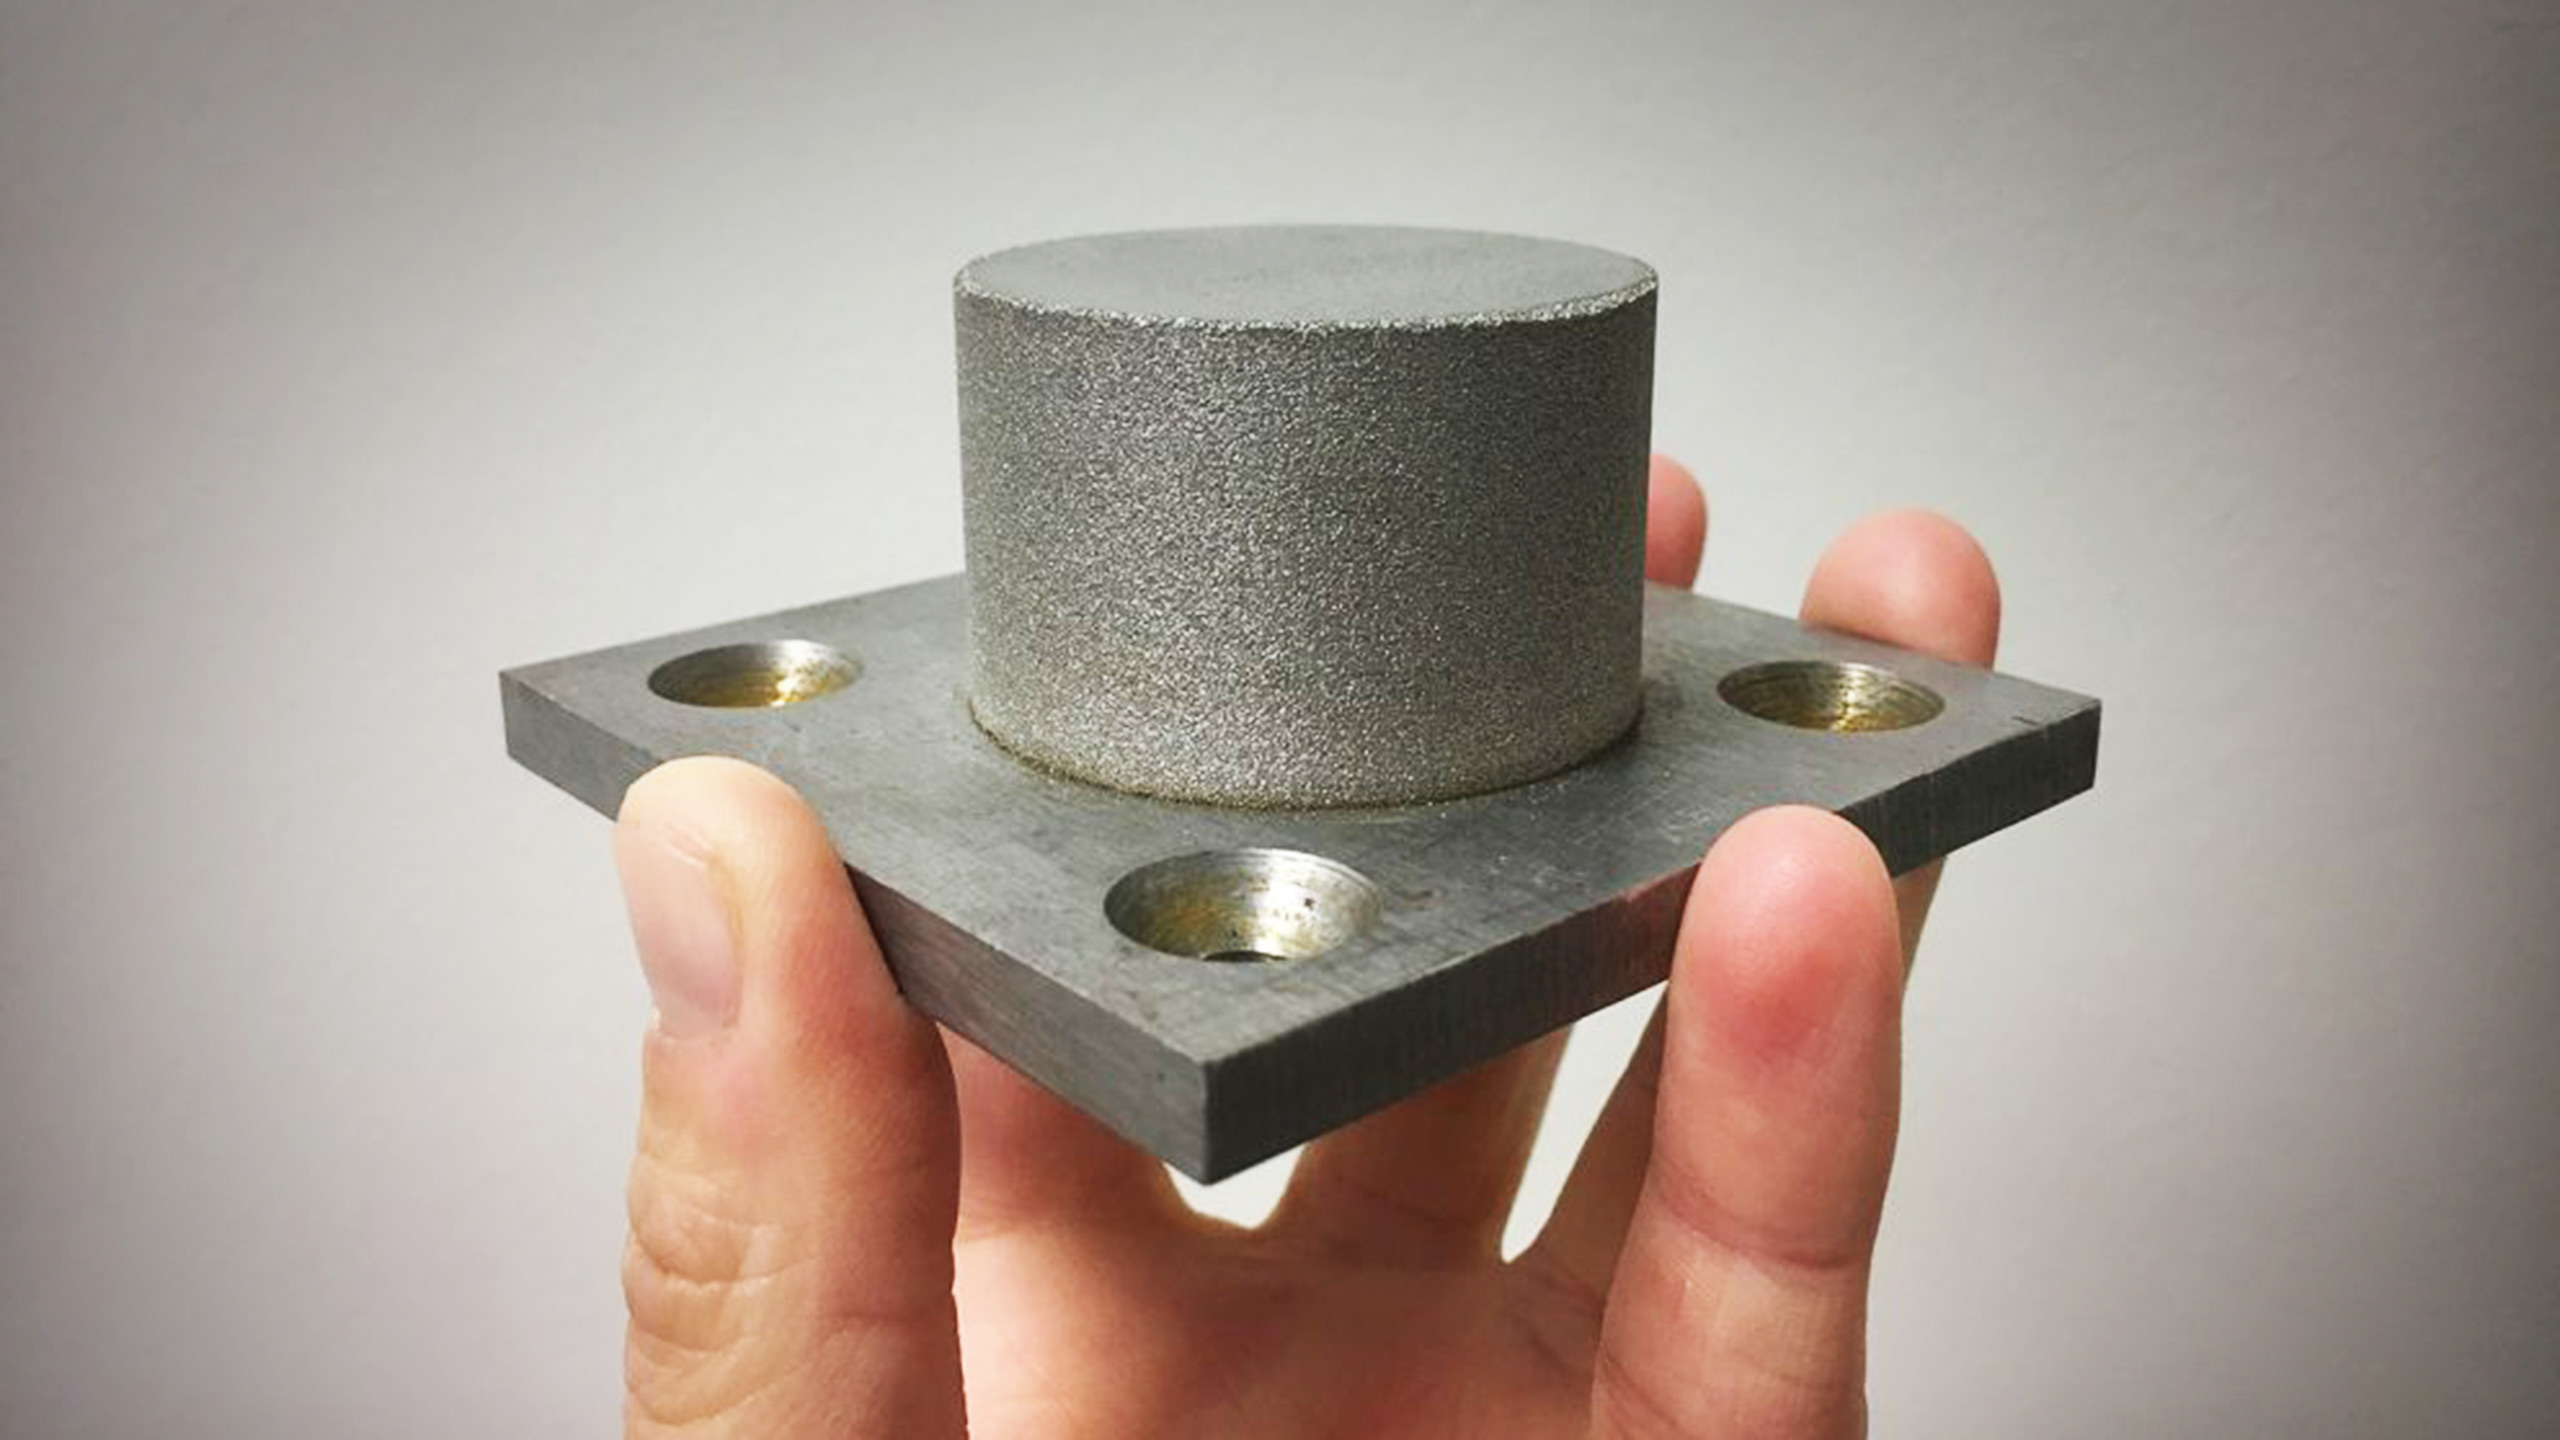 The cylinder is an amorphous iron alloy, or metallic glass, made using an additive manufacturing technique